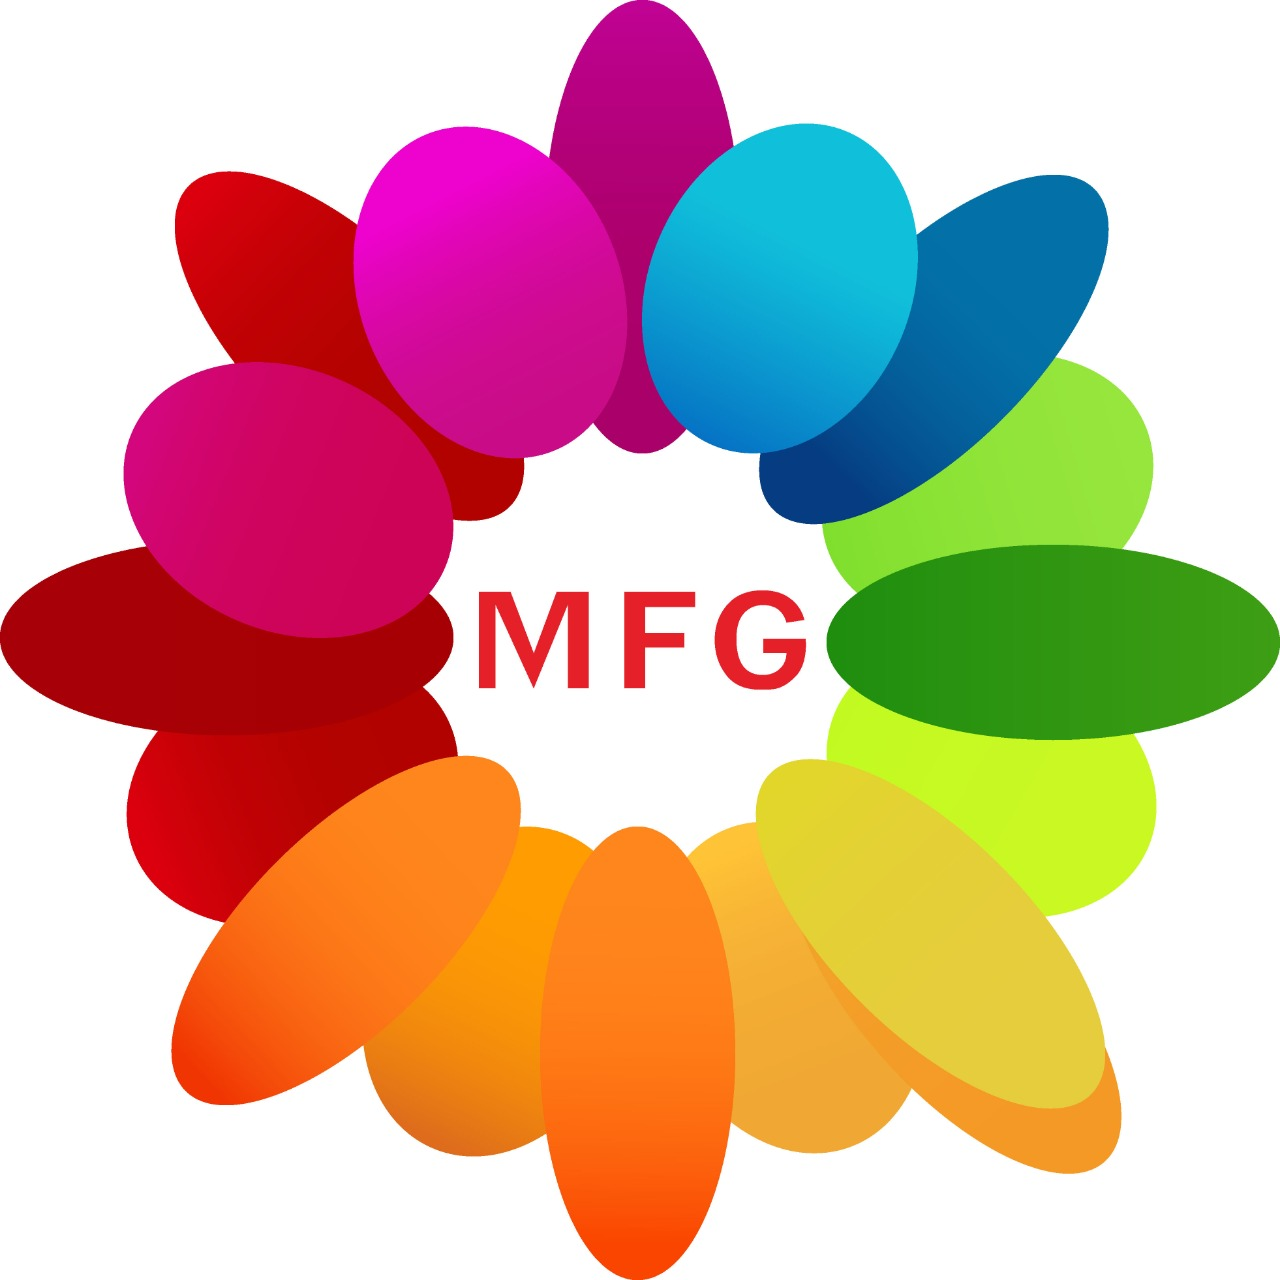 Bunch of Red Roses with White lilies